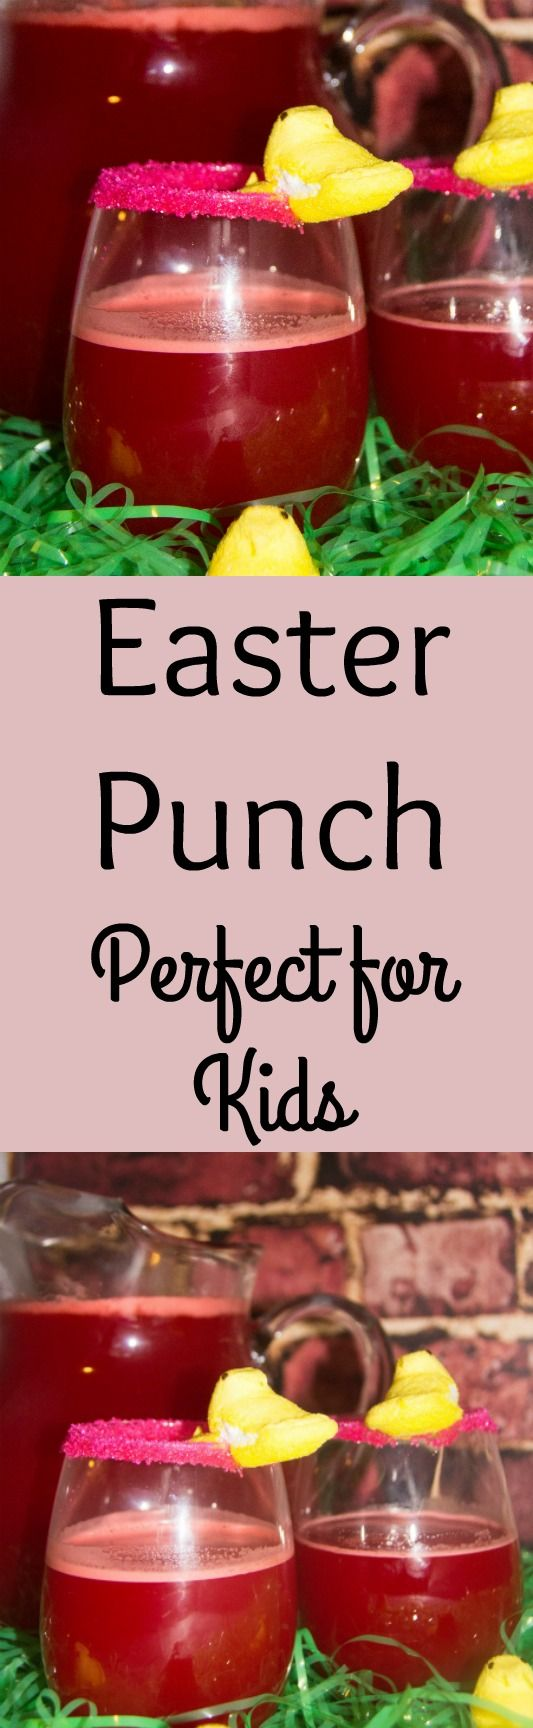 Whether You Are Looking For An Easter Punch Recipe Or A Non Alcoholic Punch Recipe For Anytime Th Alcoholic Punch Recipes Punch Recipes Punch Recipes For Kids